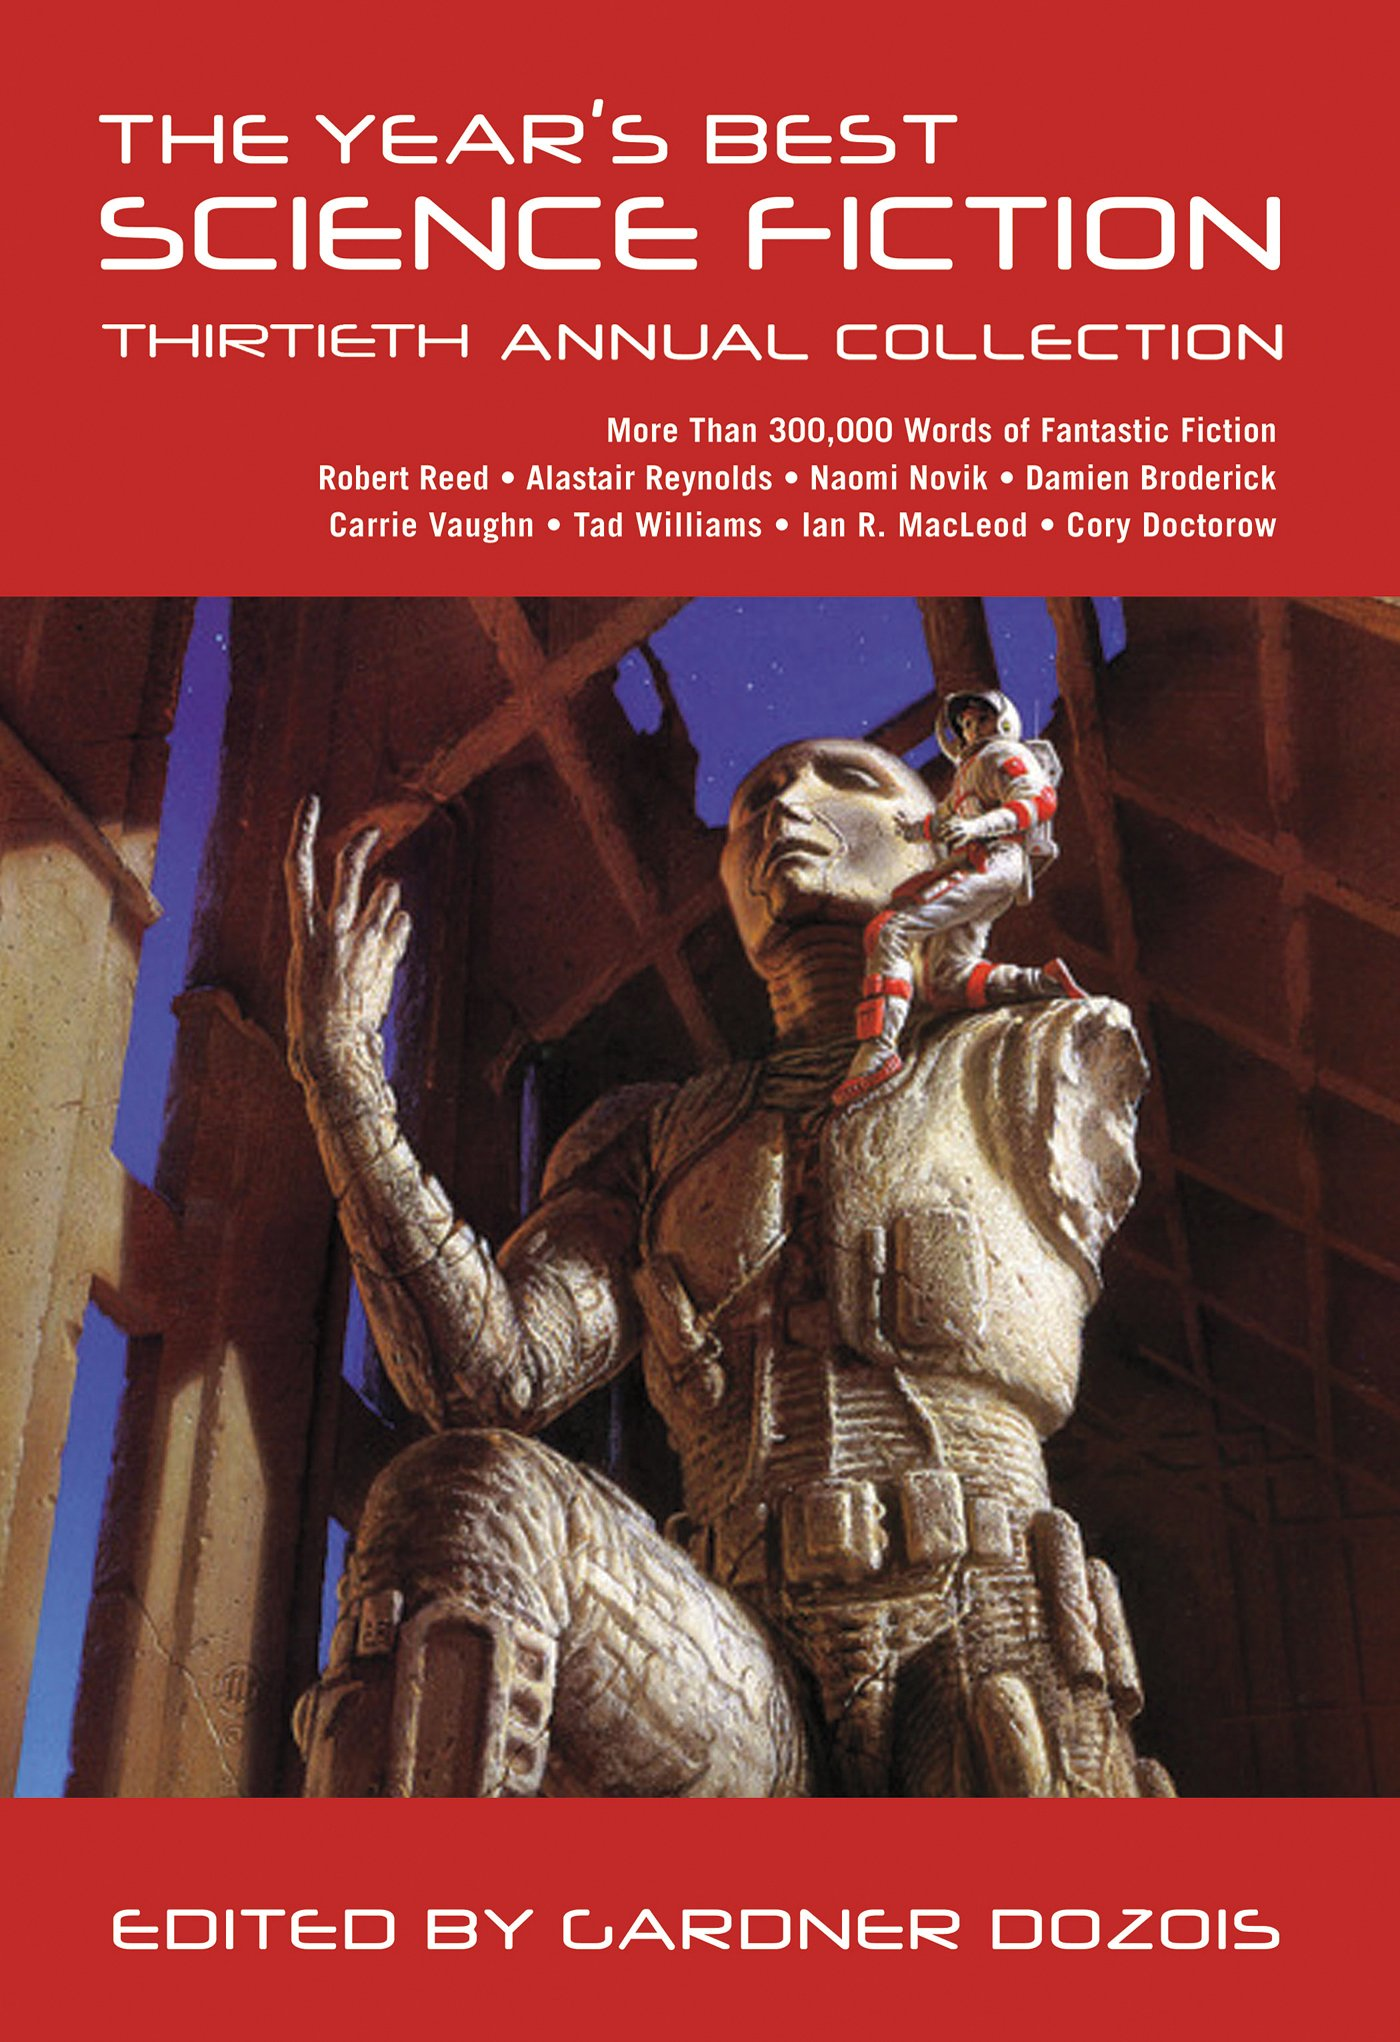 The Year's Best Science Fiction: Thirtieth Annual Collection PDF